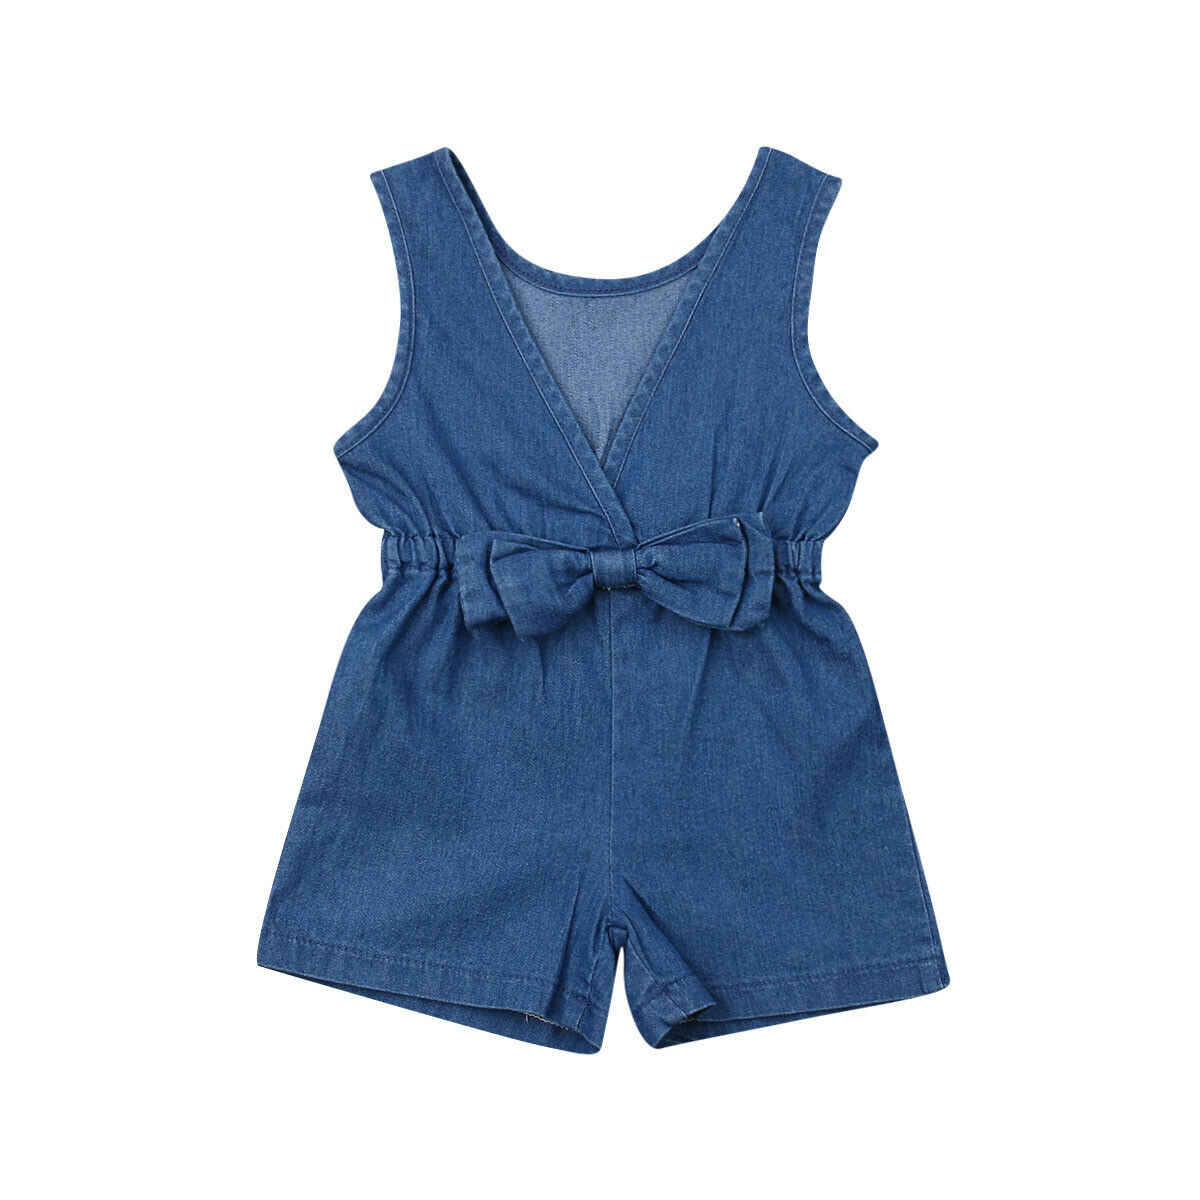 Toddler Kids Baby Girls Denim Romper Shorts Jumpsuits Playsuit Outfit Clothes Boy Girl Outfit Clothes Solid cowboy